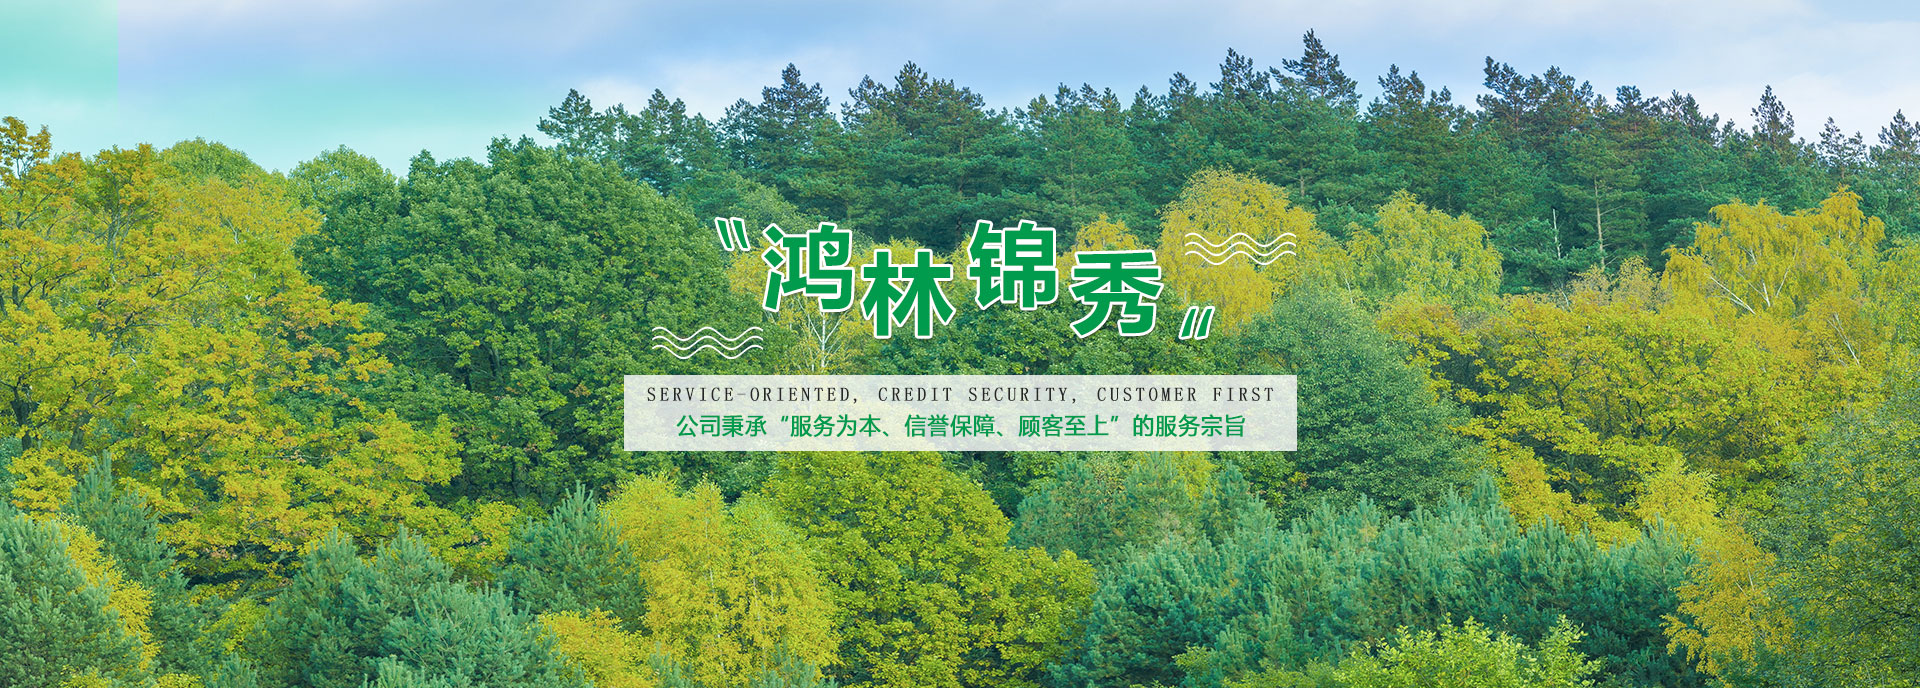 http://www.nngljx.cn/data/images/slide/20190826075454_818.jpg